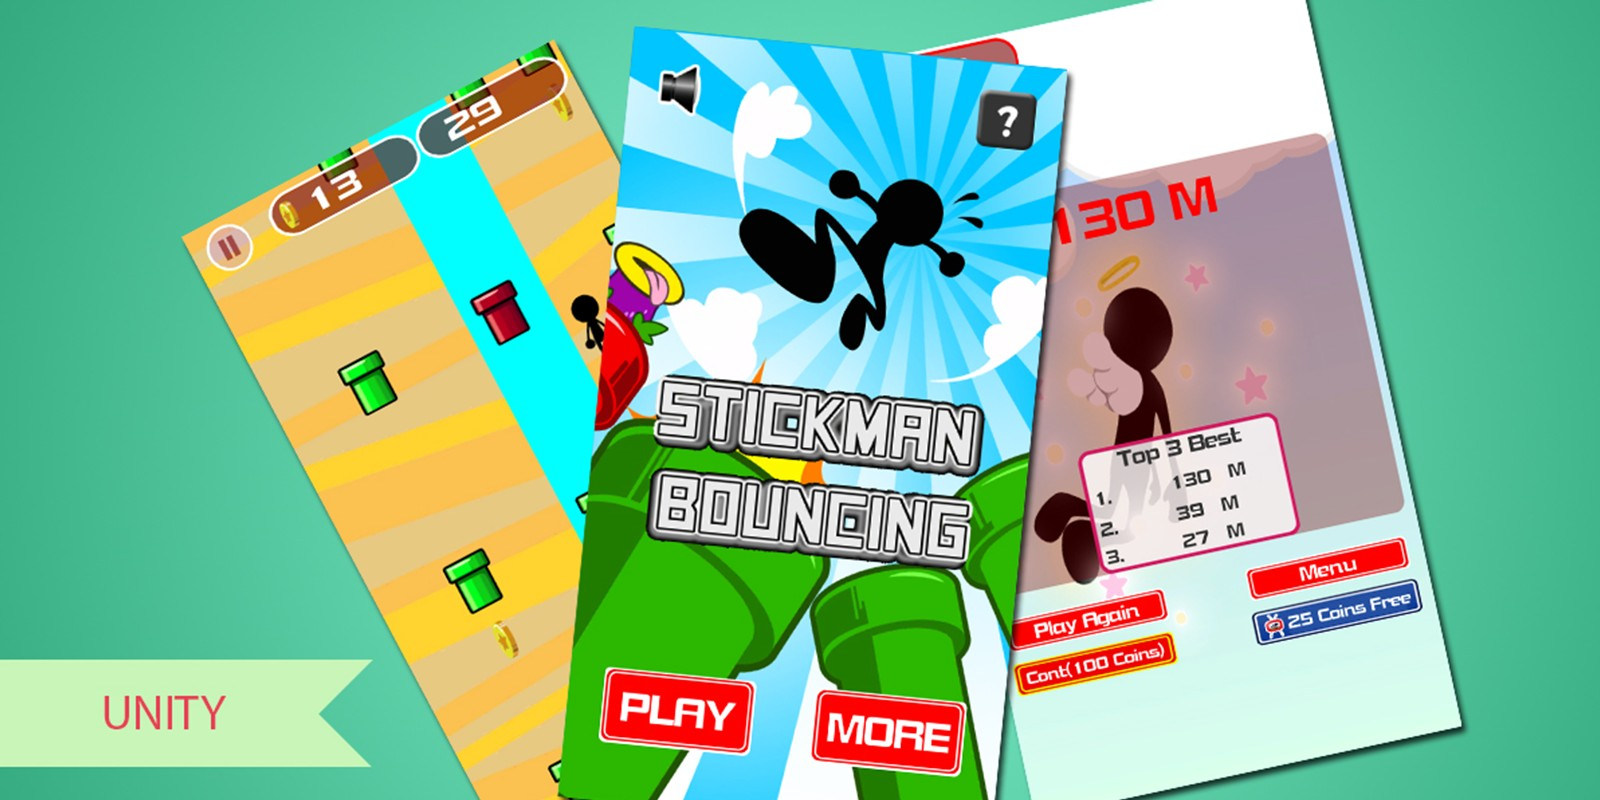 Stickman Bouncing - Complete Unity Project